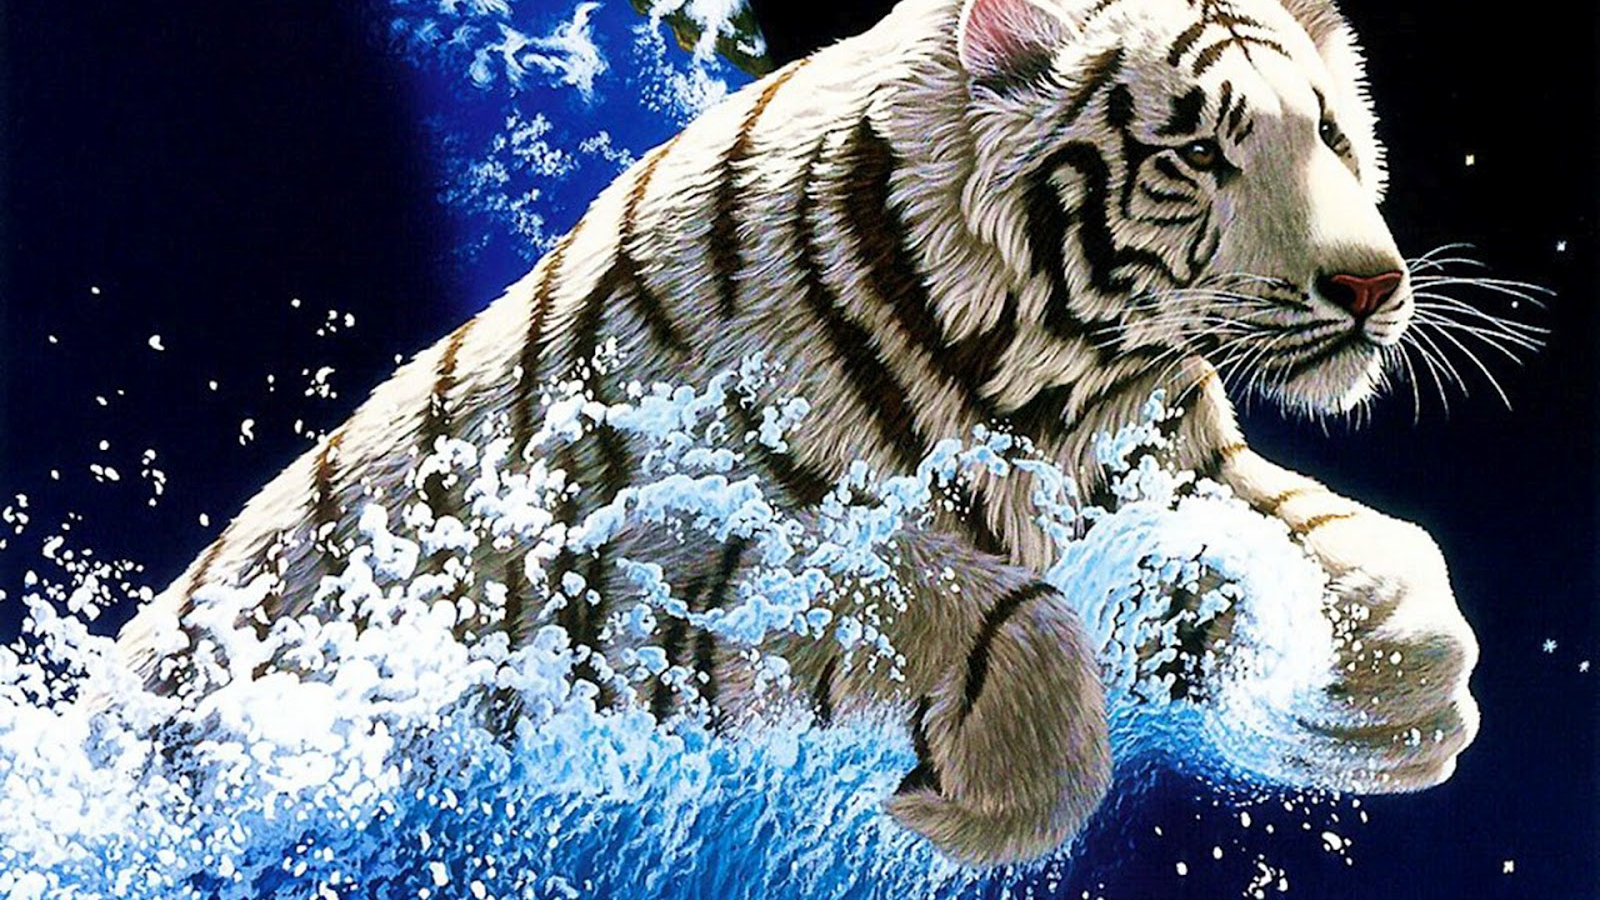 Cool Wallpapers Blog Amazing White Tiger 1600x1200 Download Resolutions Desktop 1600x900